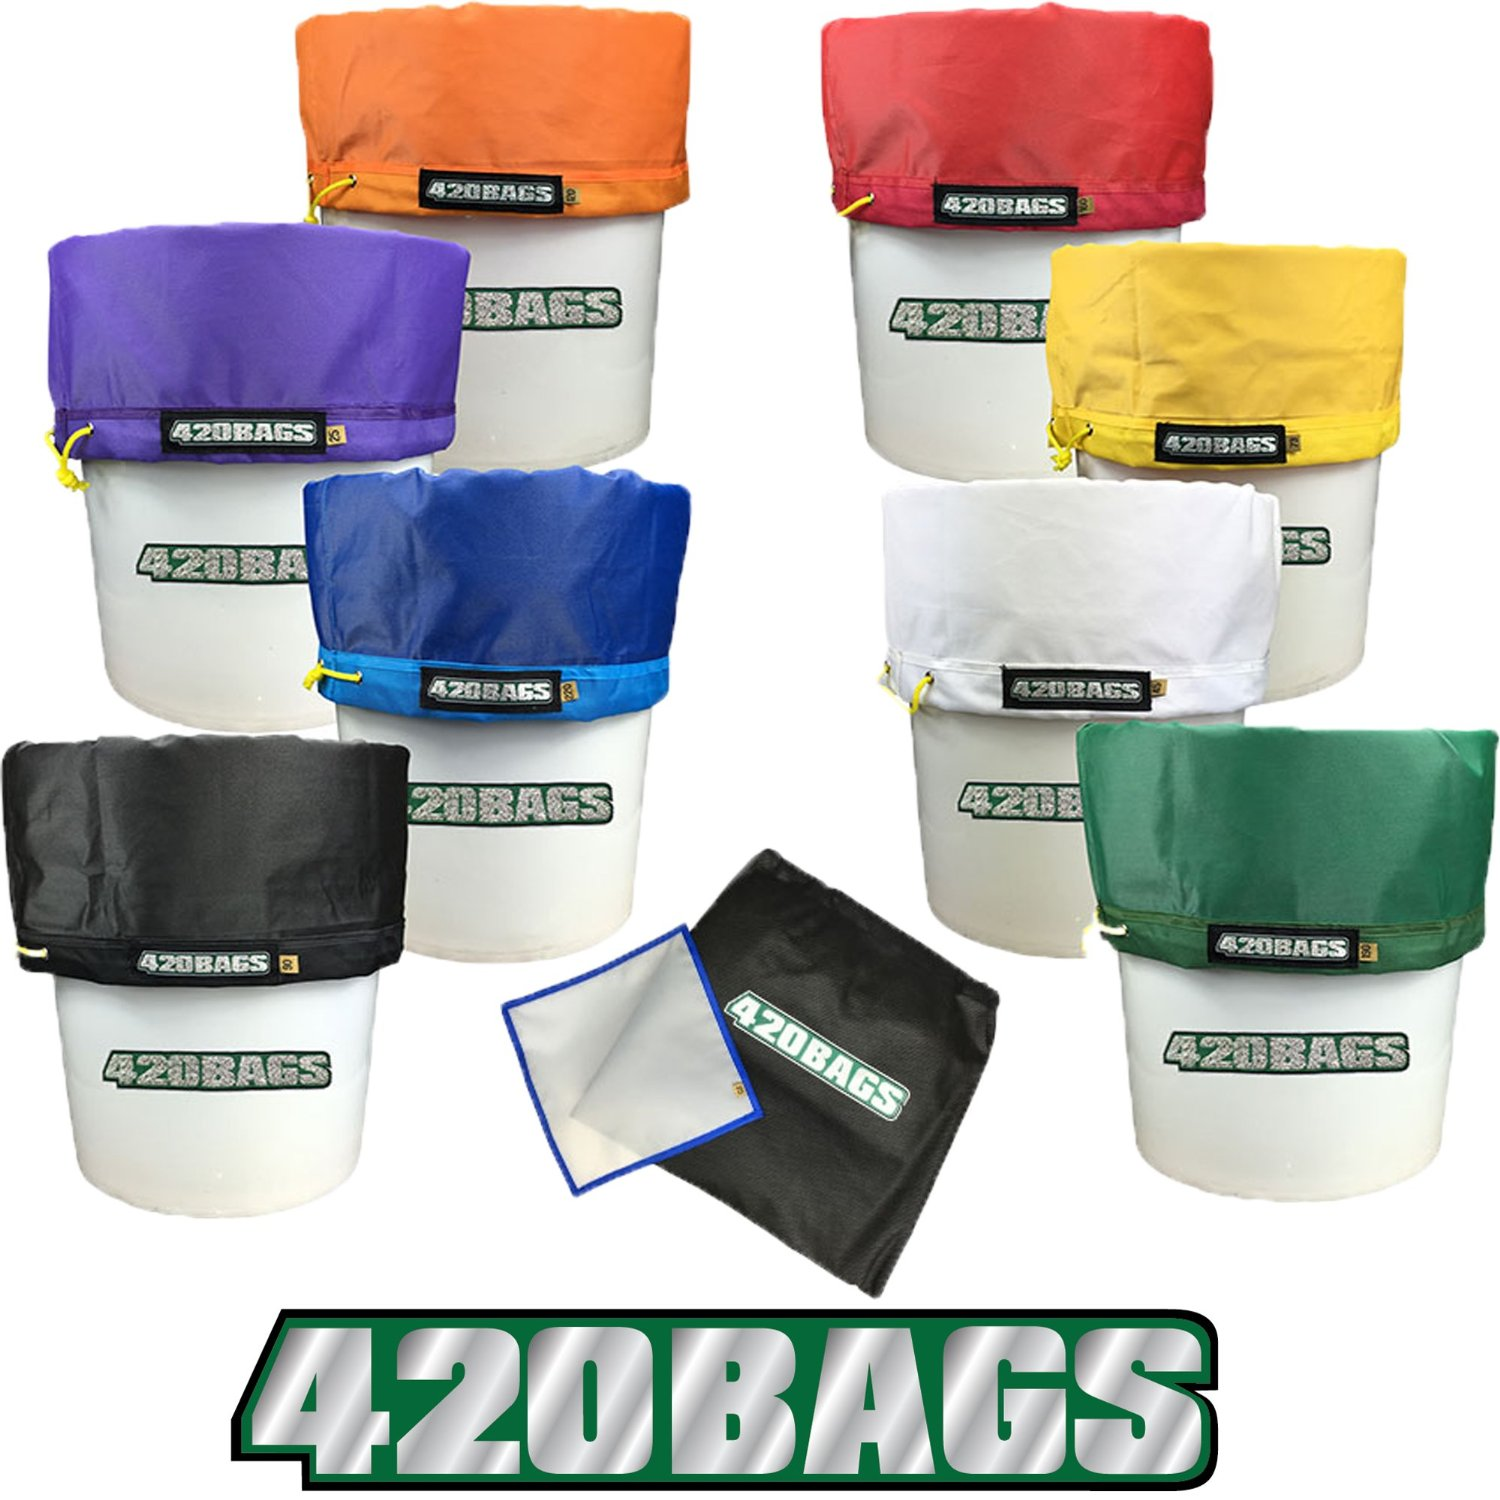 420 BAGS Bubble Bags 5 Gallon 8 Bag Set - Herbal Ice Bubble Bag Essence Extractor Kit - Comes with Pressing Screen and Storage Bag